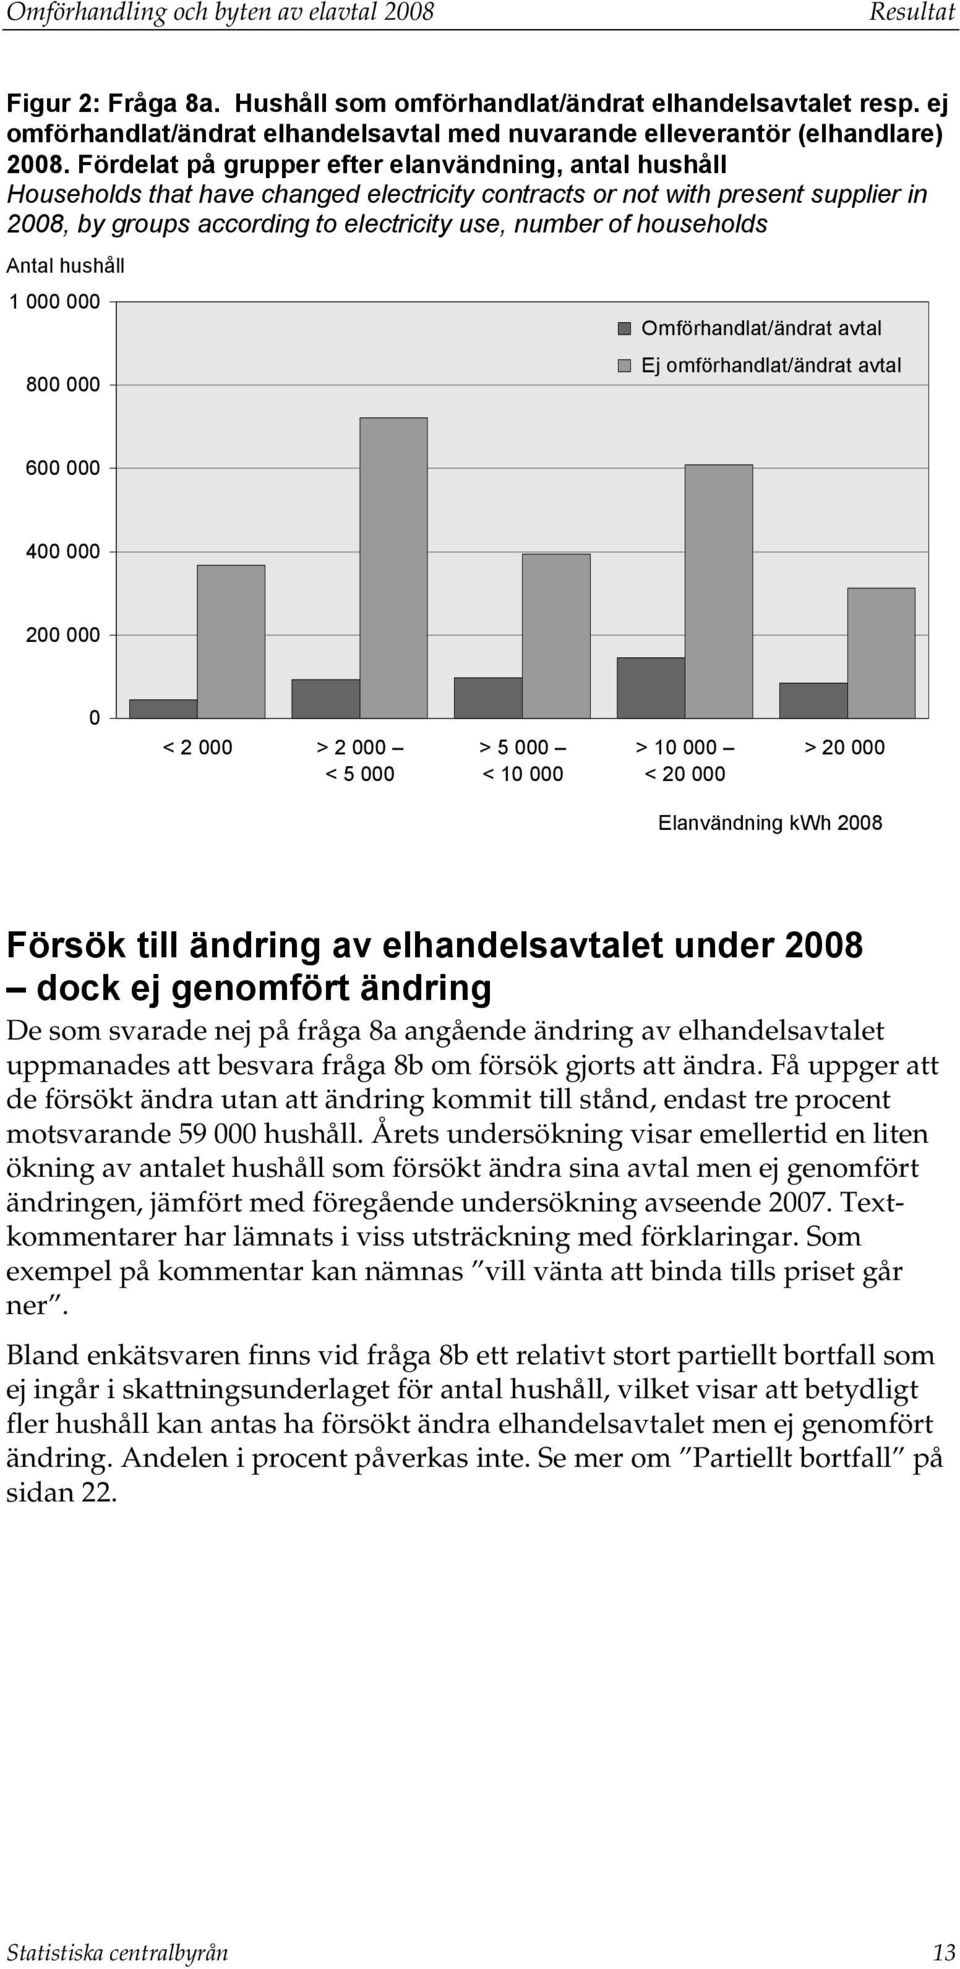 Fördelat på grupper efter elanvändning, antal hushåll Households that have changed electricity contracts or not with present supplier in 2008, by groups according to electricity use, number of